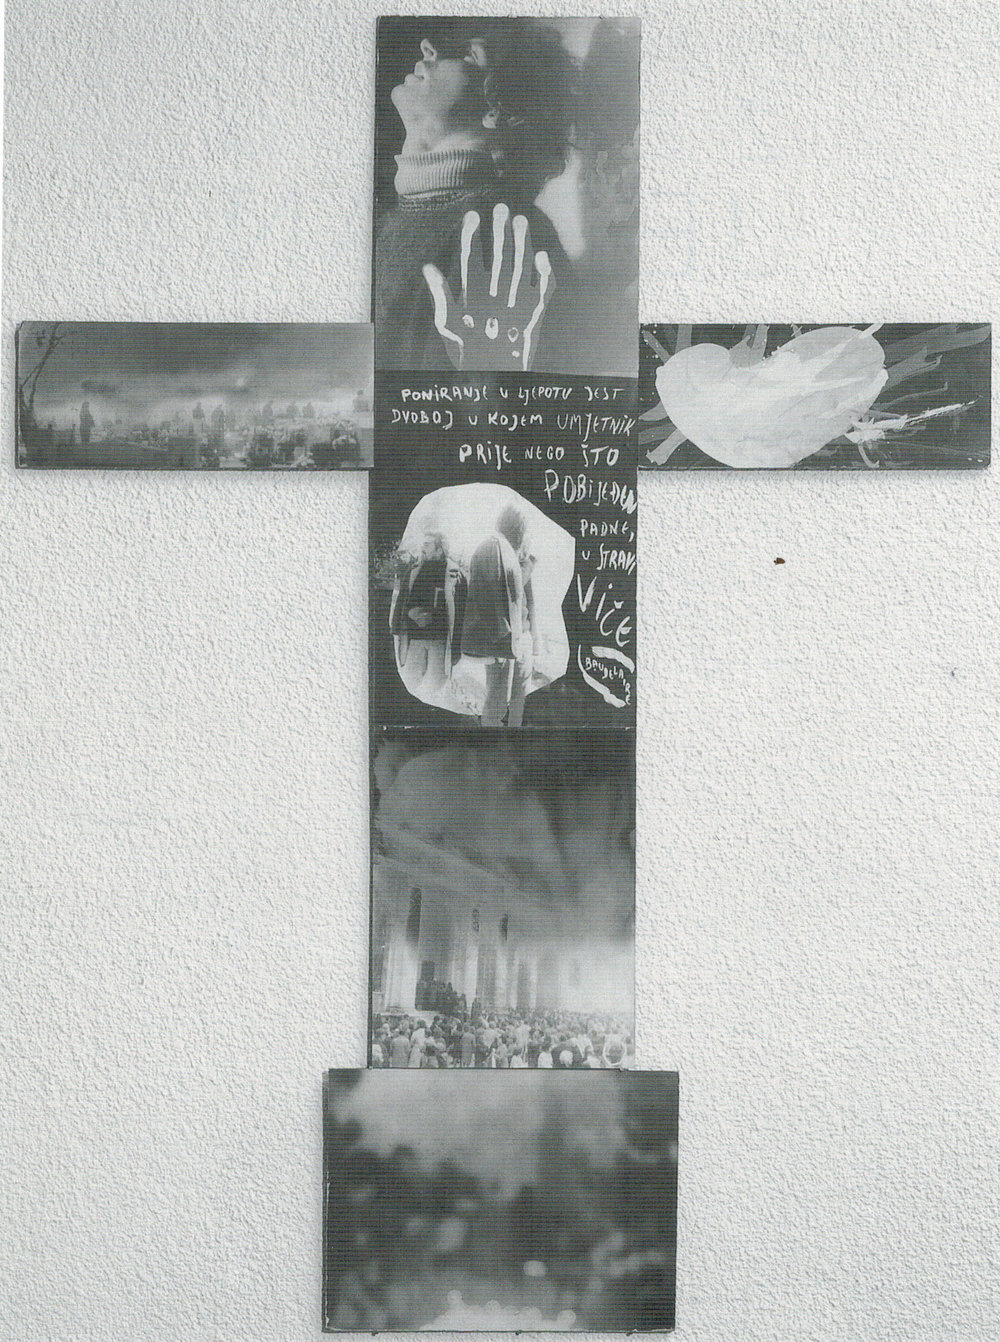 CROSS (1973) black and white photographs on hardboard, pencil